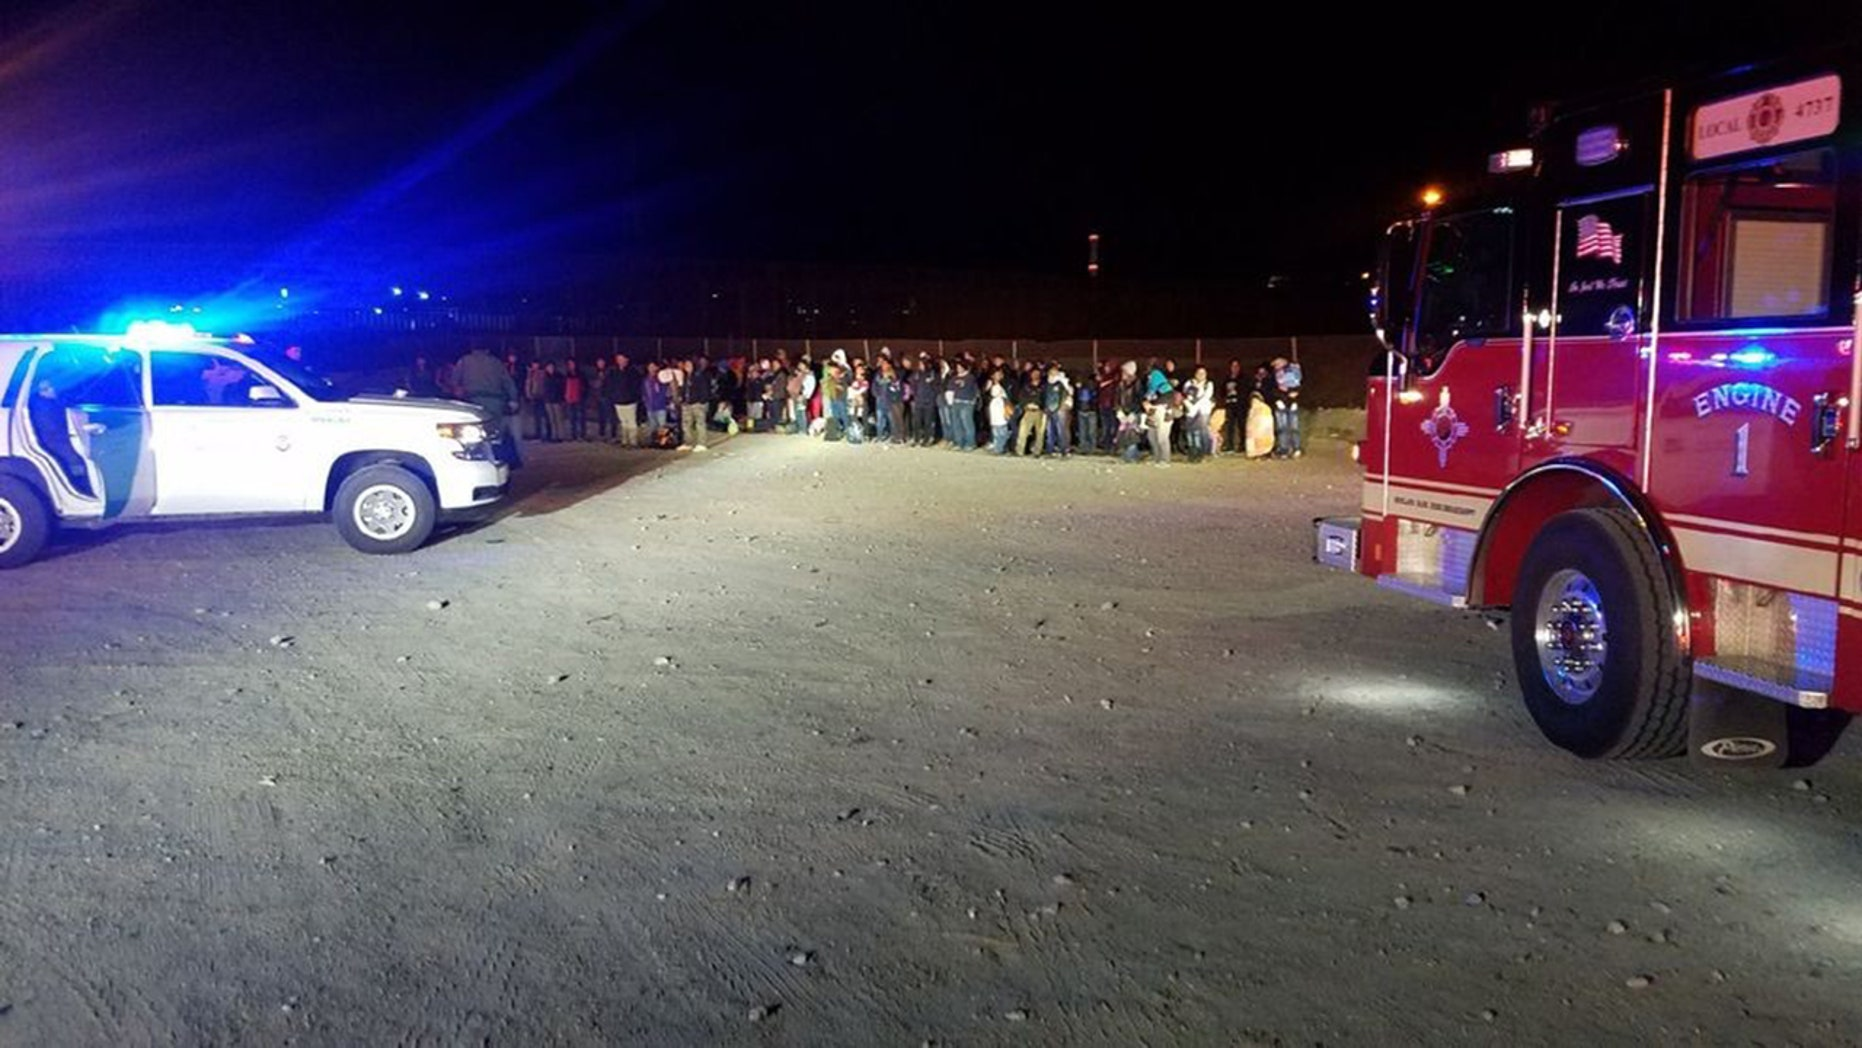 U.S. New Mexico Customs and Border Protection agents arrested 180 illegal immigrants crossing the United States from Mexico.